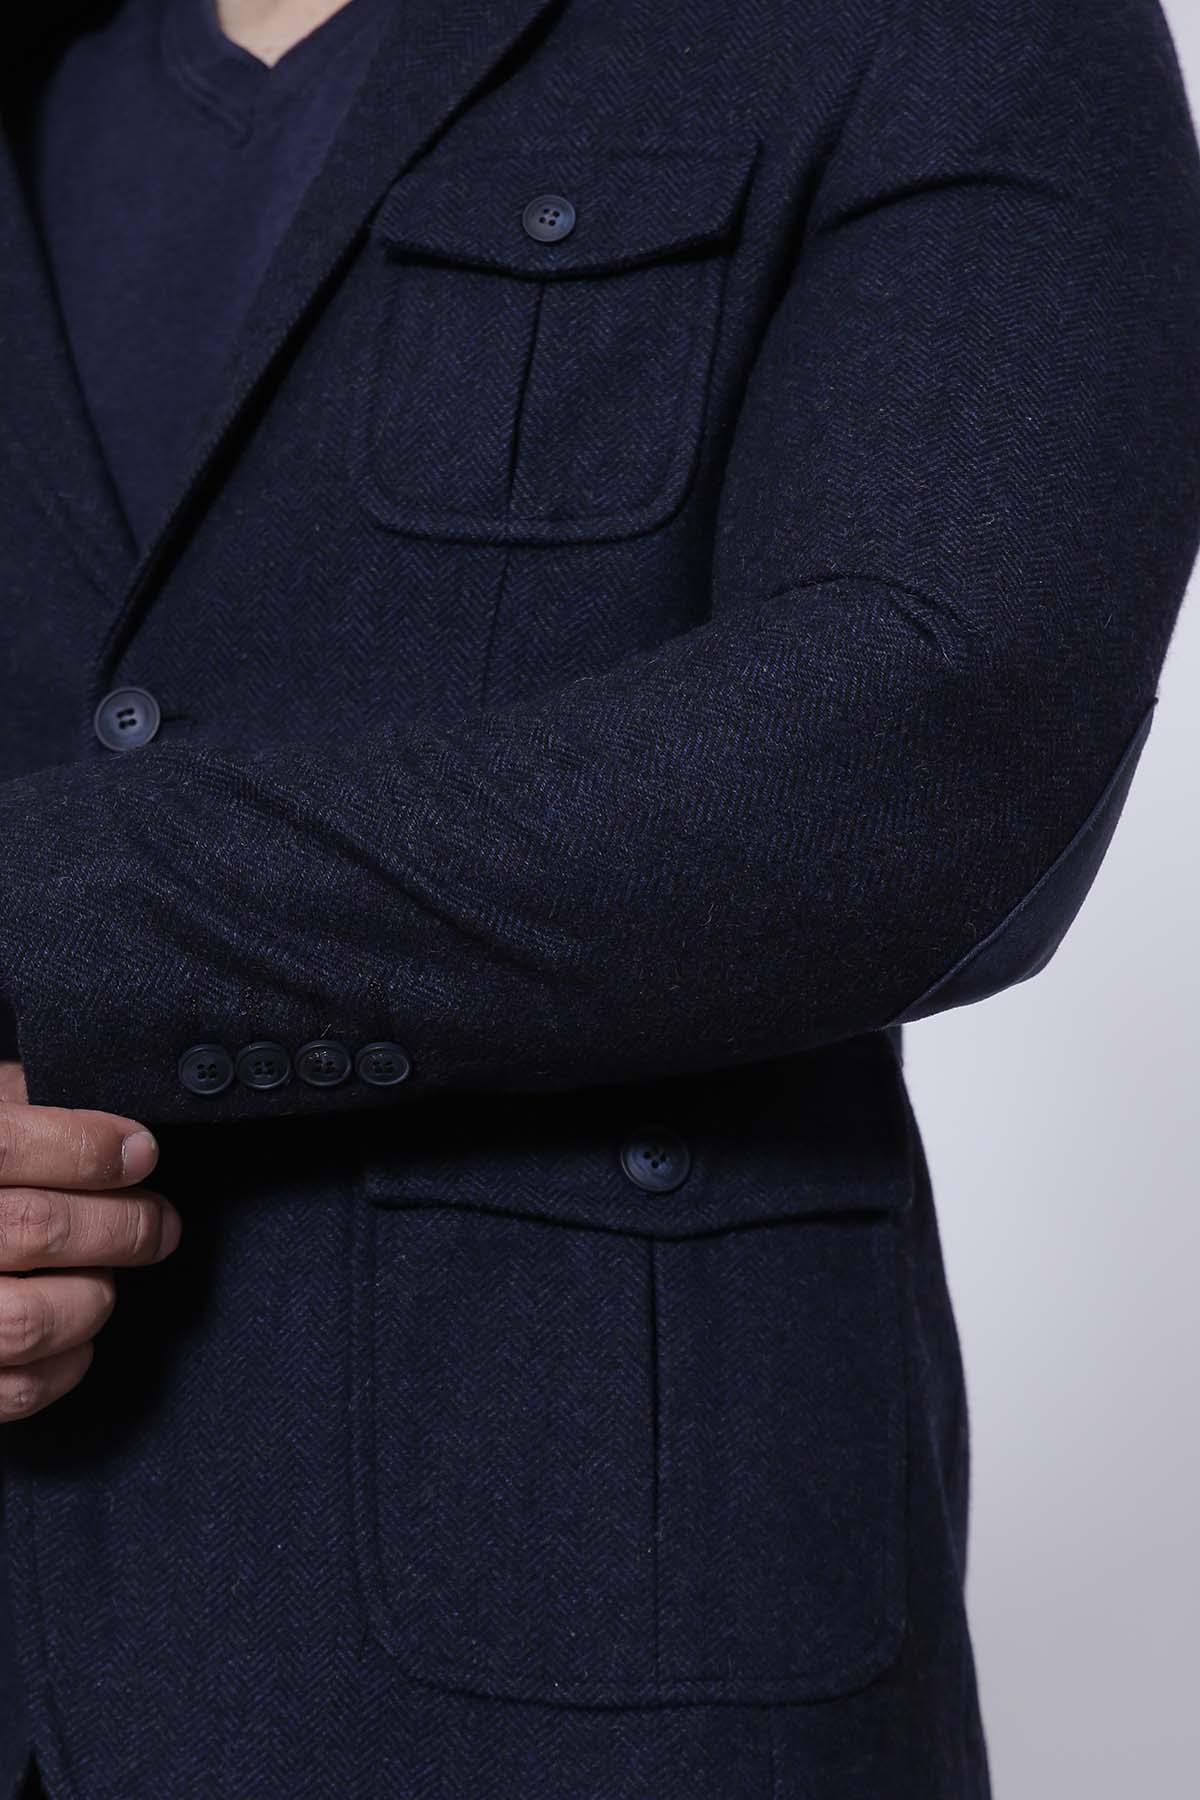 CASUAL COAT SLIM FIT NAVY - Charcoal - Suiting - WINTER SALE